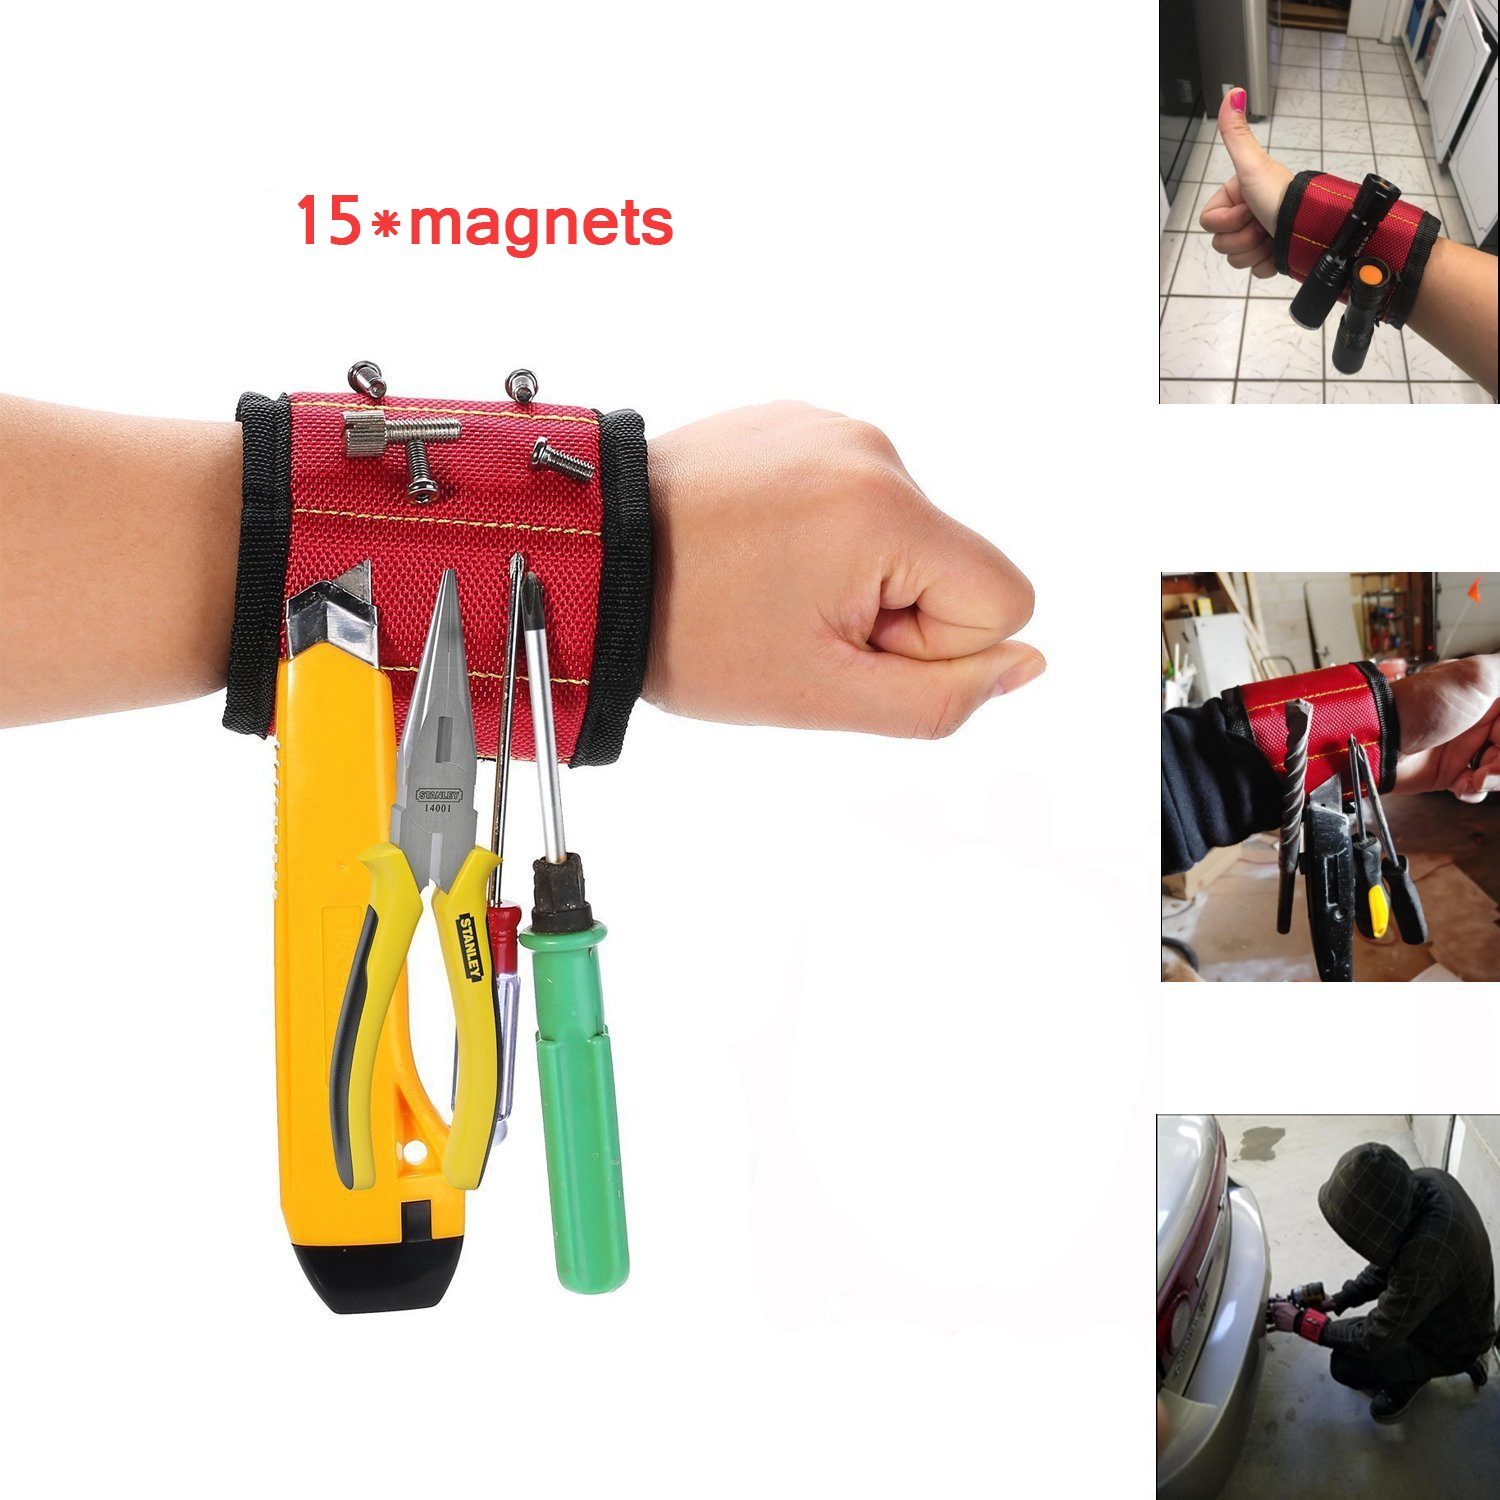 Magnetic Wristband,Amtake tool with 15 Magnets for Holding Screws, Nails, Drill Bits - Best Unique Tool G-ift for Men, Women,DIY Handyman, Father/Dad, Husband, Boyfriend, Him